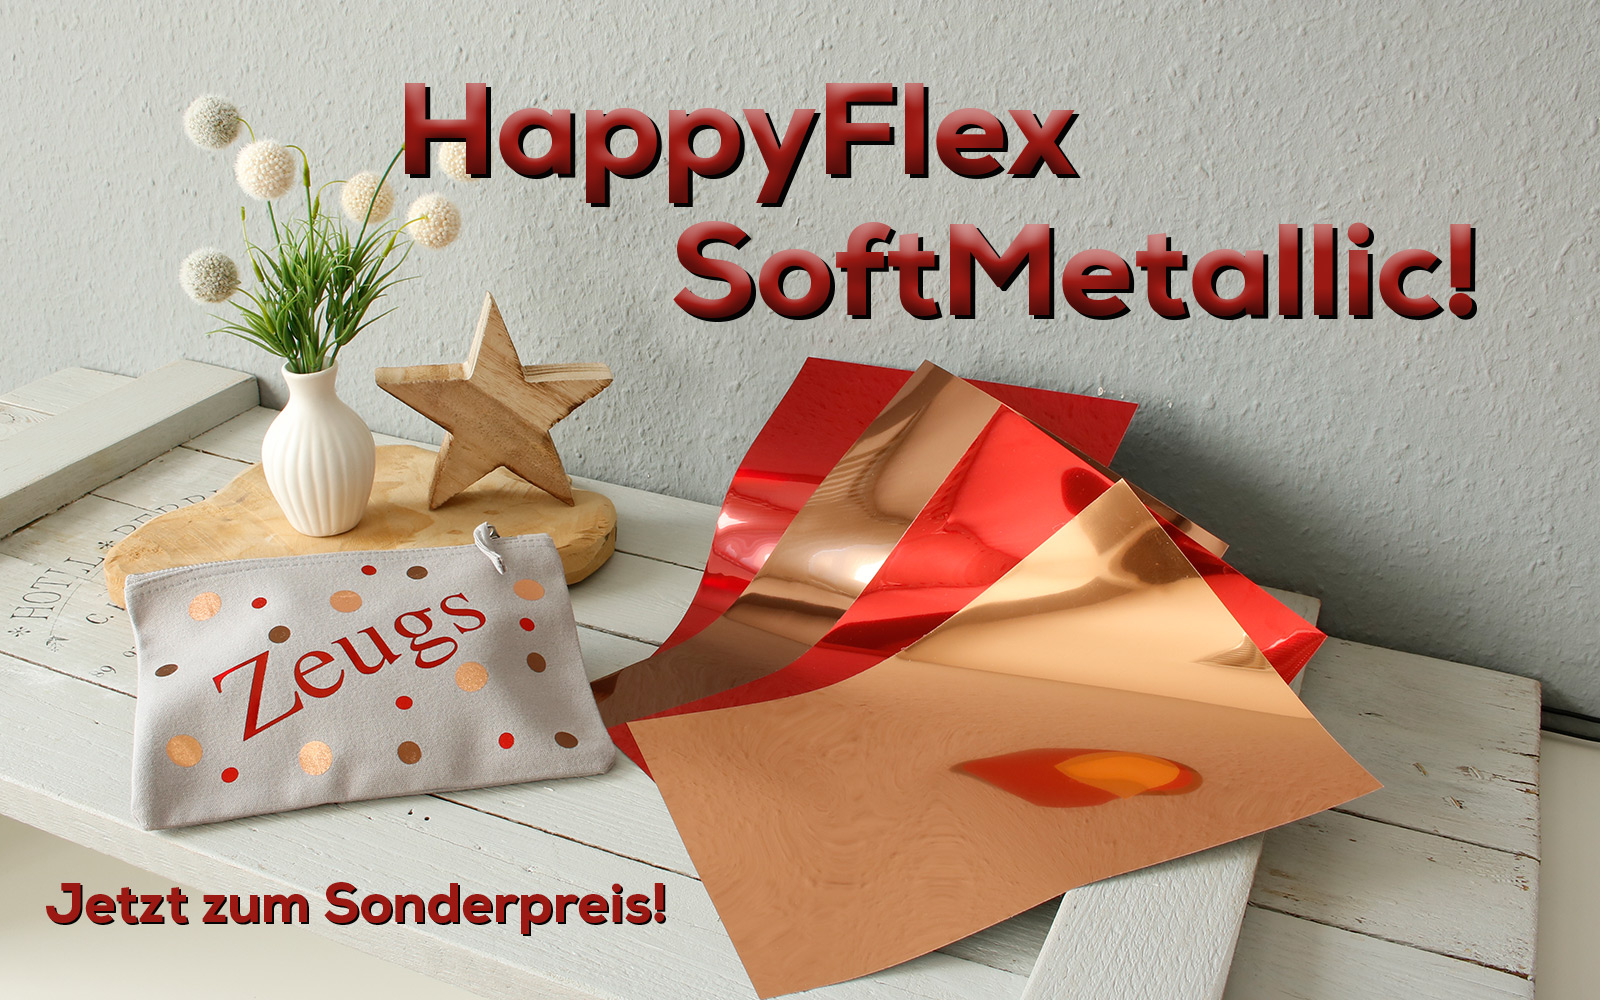 HappyFlex SoftMetallic